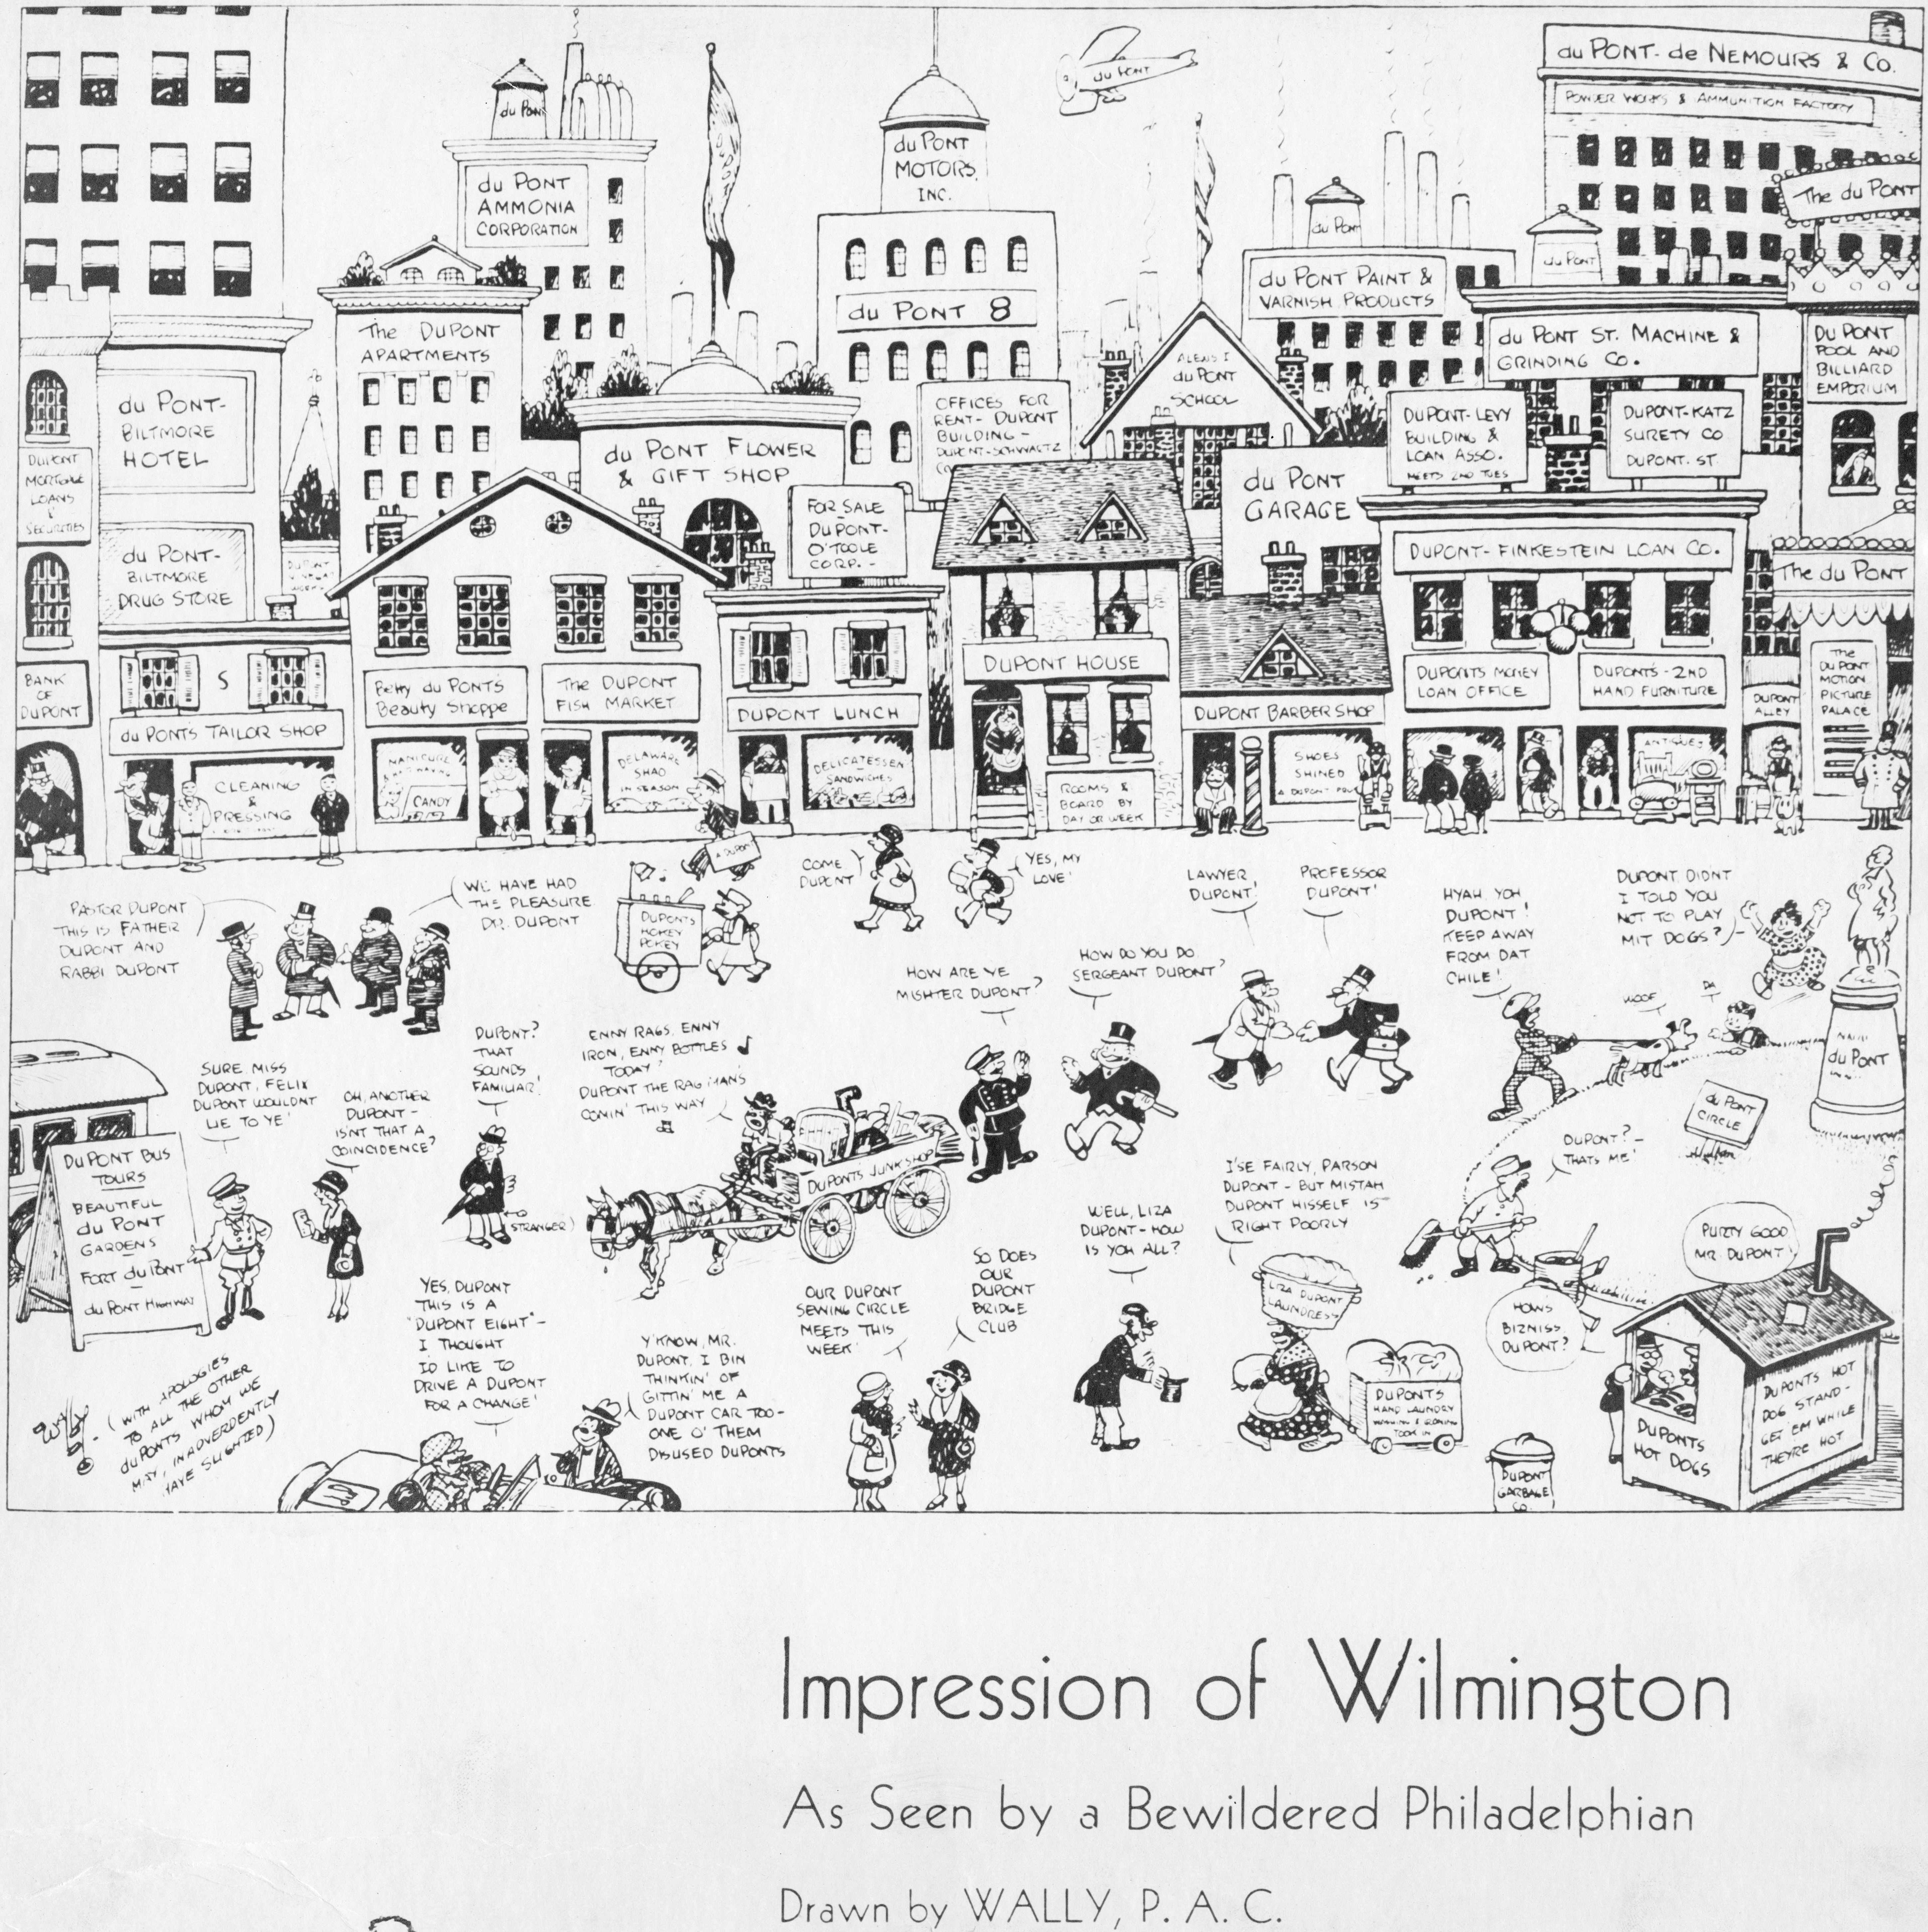 Cartoon depicting a Wilmington street full of people and businesses bearing the DuPont name.